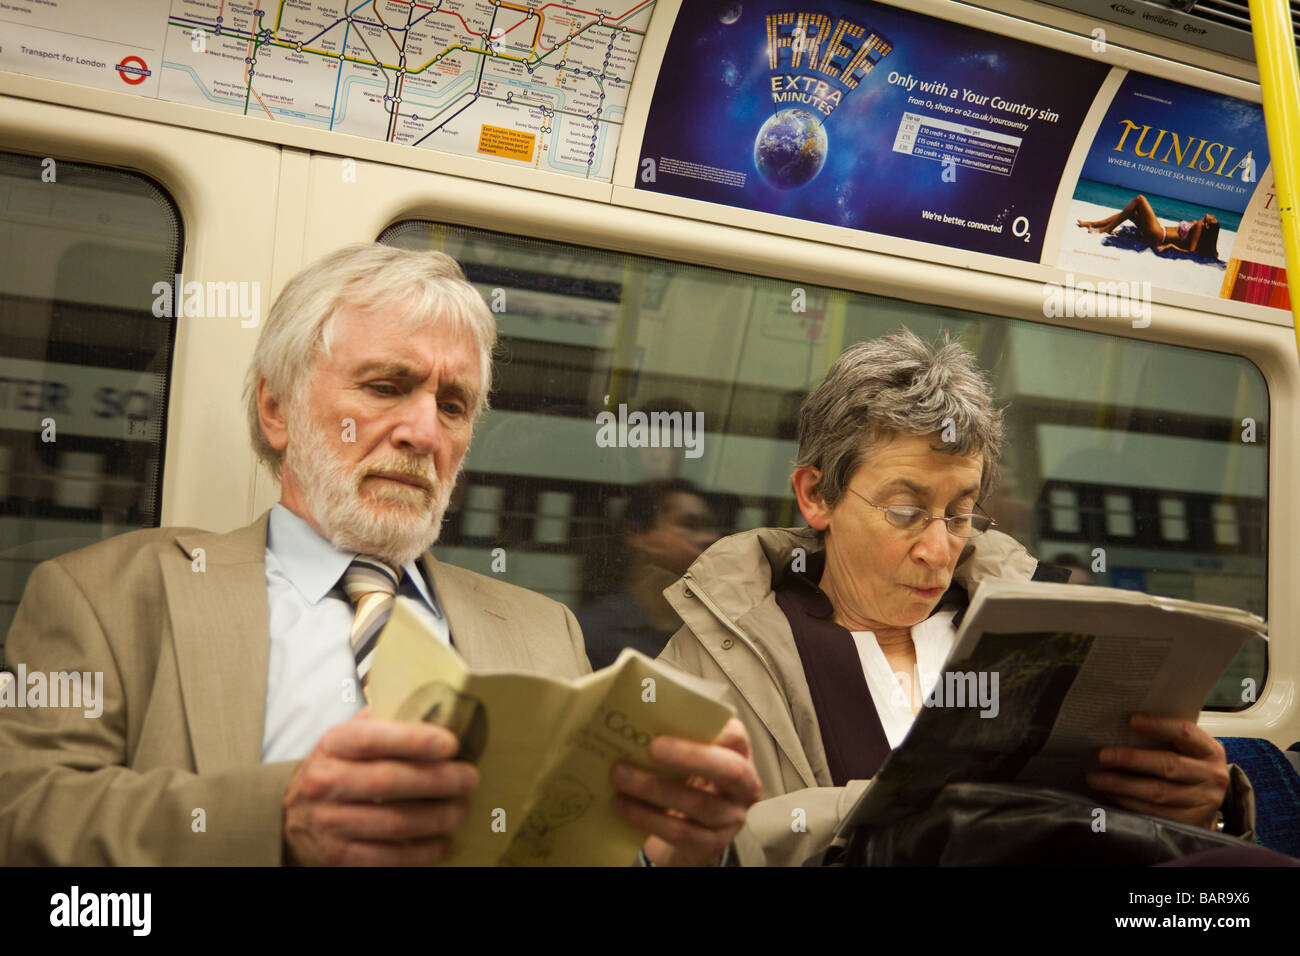 Couple reading, métro de Londres, Londres, Angleterre Photo Stock